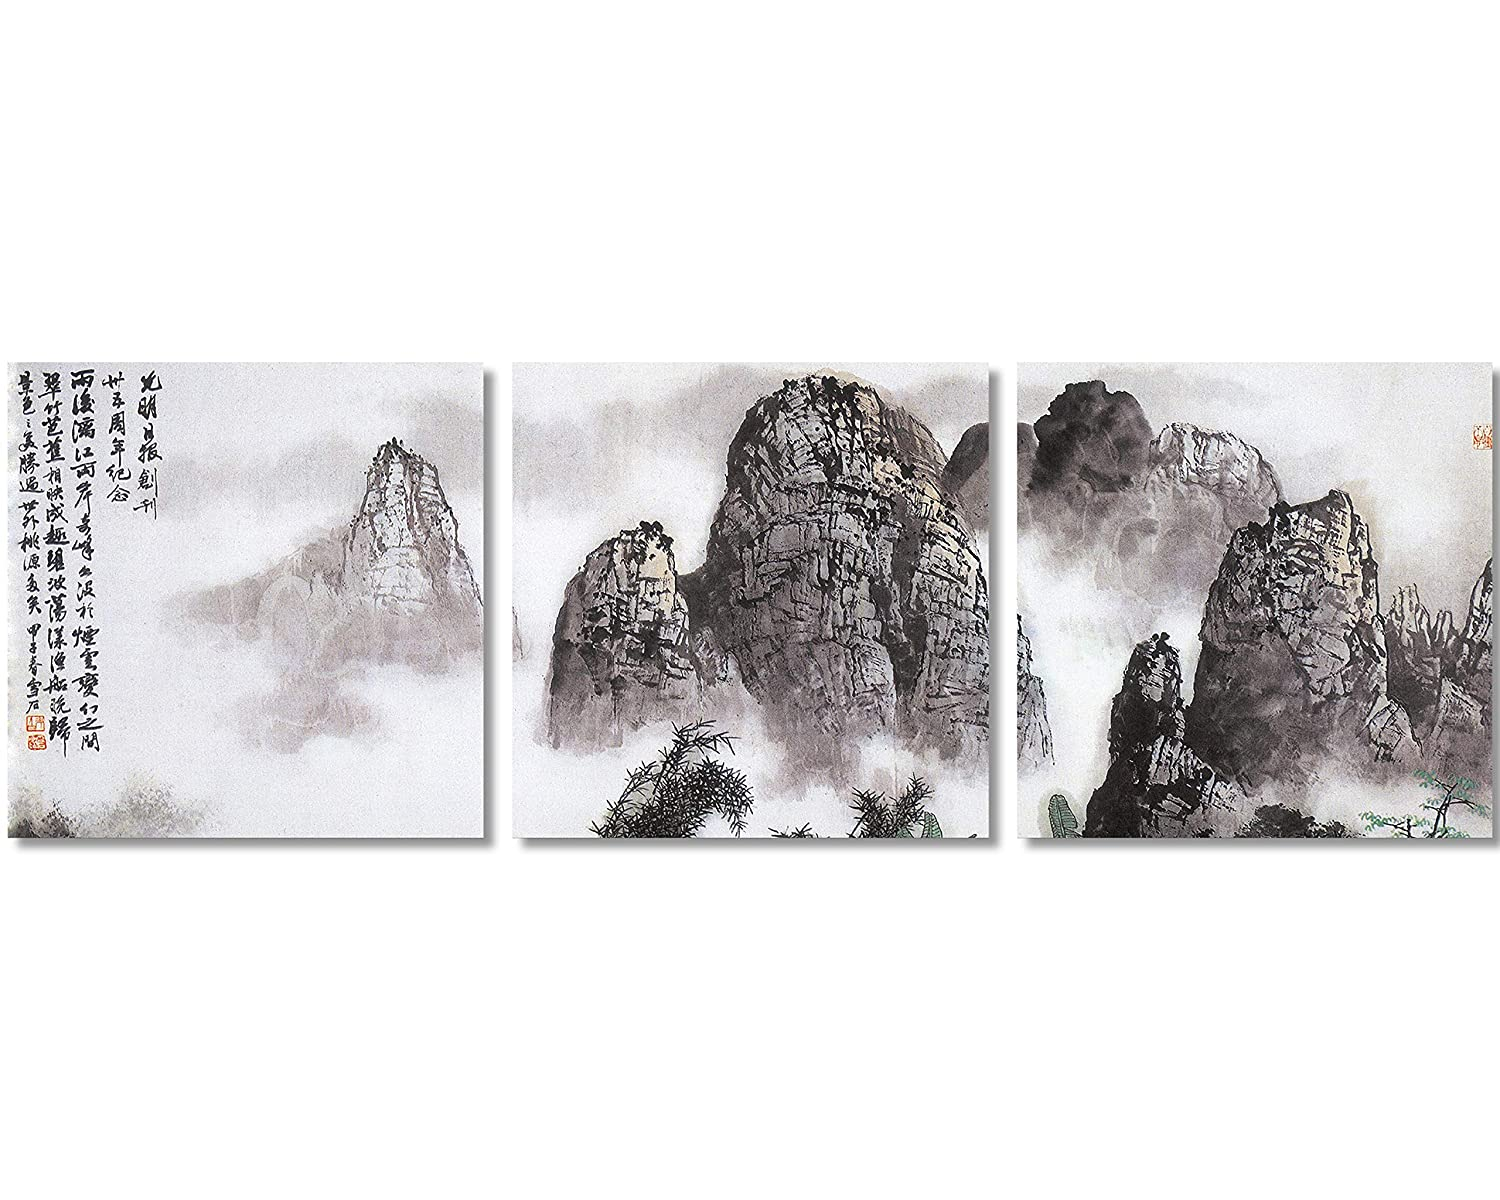 9afc0f4d9 QICAI Chinese Landscape Paintings Prints On Canvas Chinese Canvas Art  Landscape The Picture Traditional Chinese Art Prints Famous Chinese Landscape  Painting ...